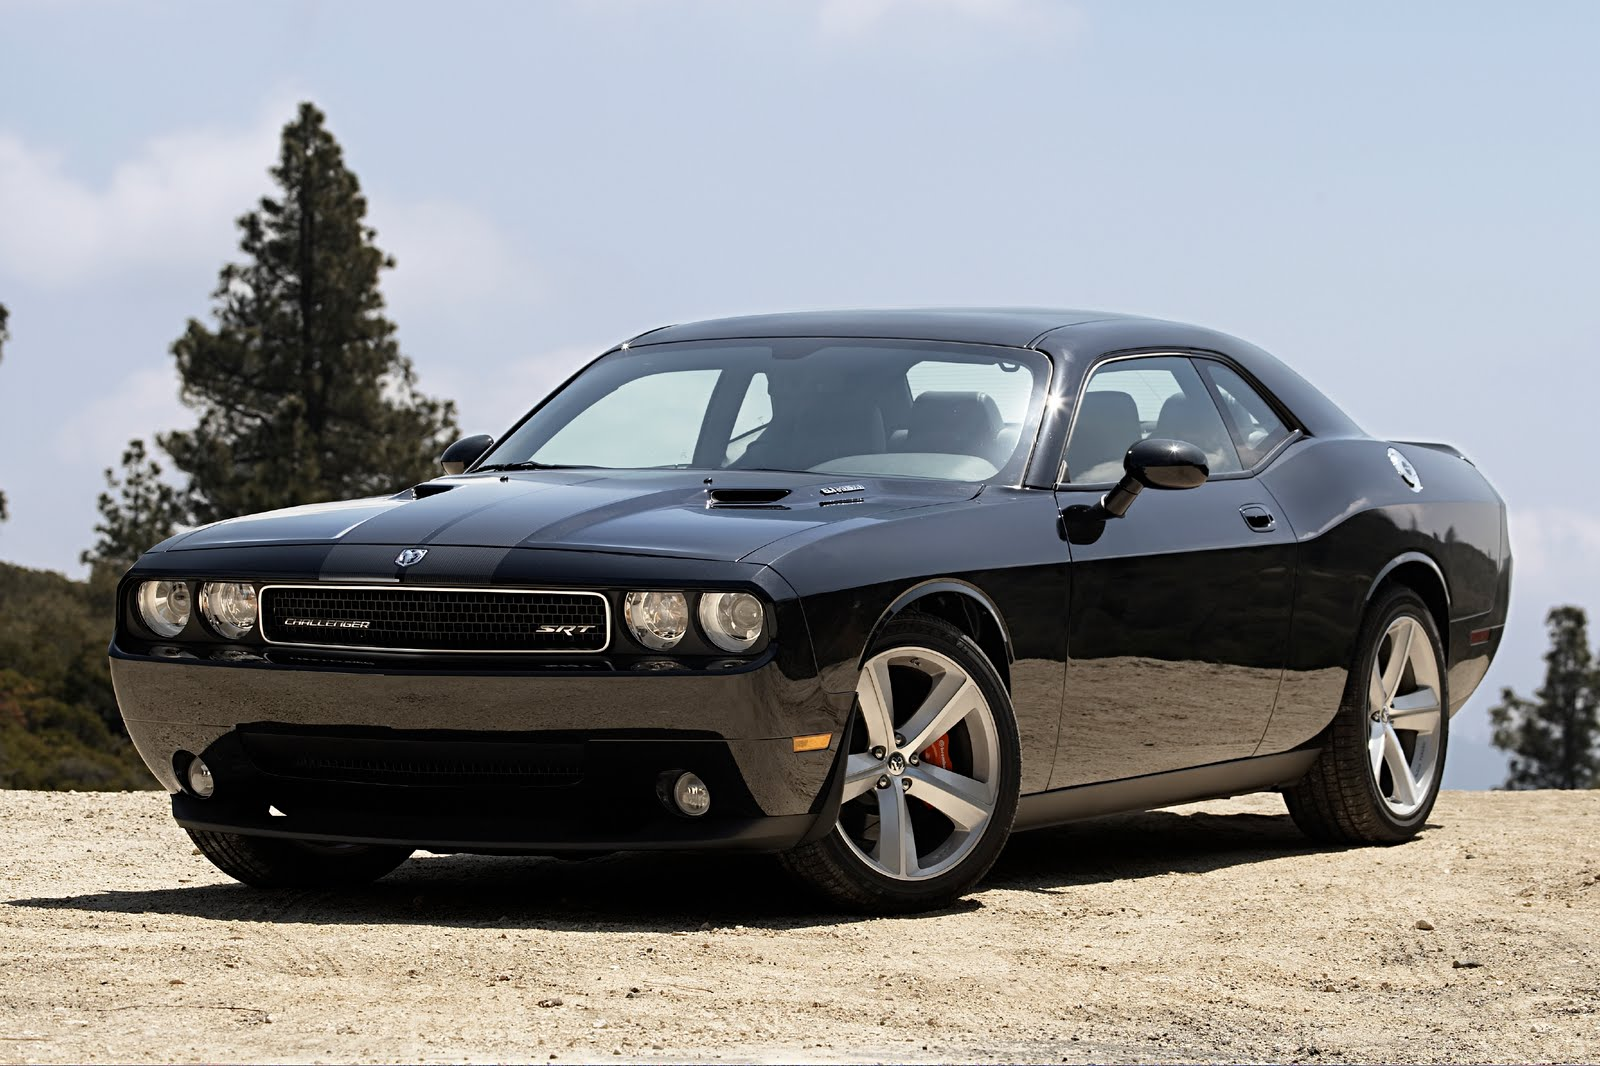 Dodge Challenger Hd Wallpaper Hd Car Wallpapers